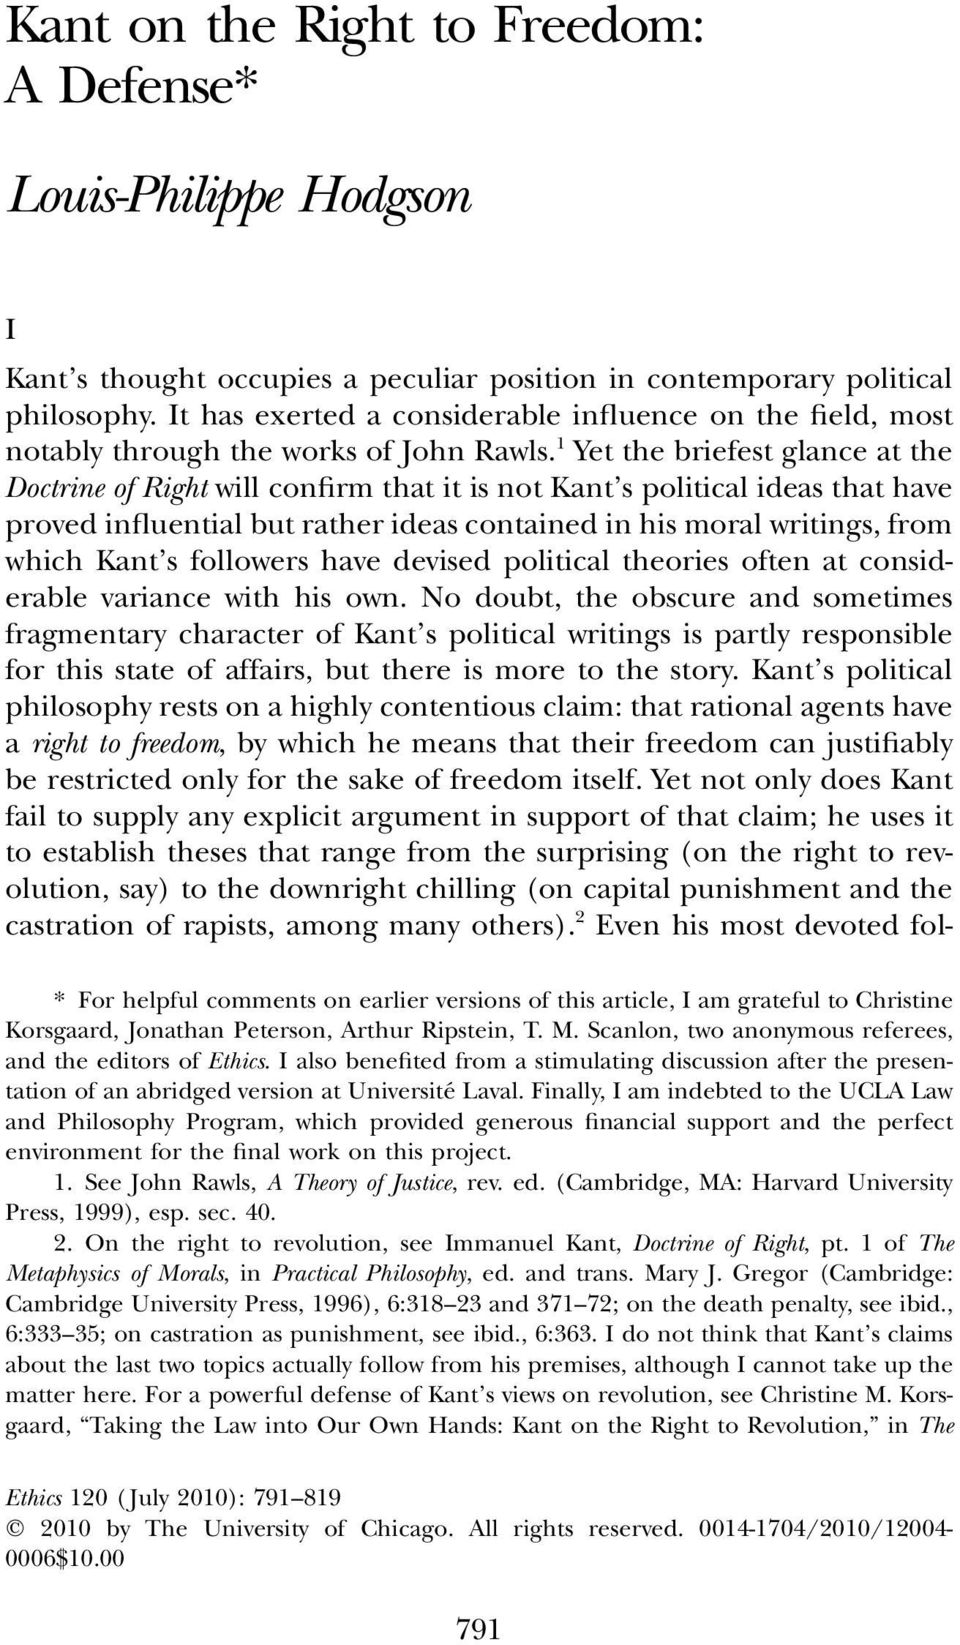 1 Yet the briefest glance at the Doctrine of Right will confirm that it is not Kant s political ideas that have proved influential but rather ideas contained in his moral writings, from which Kant s